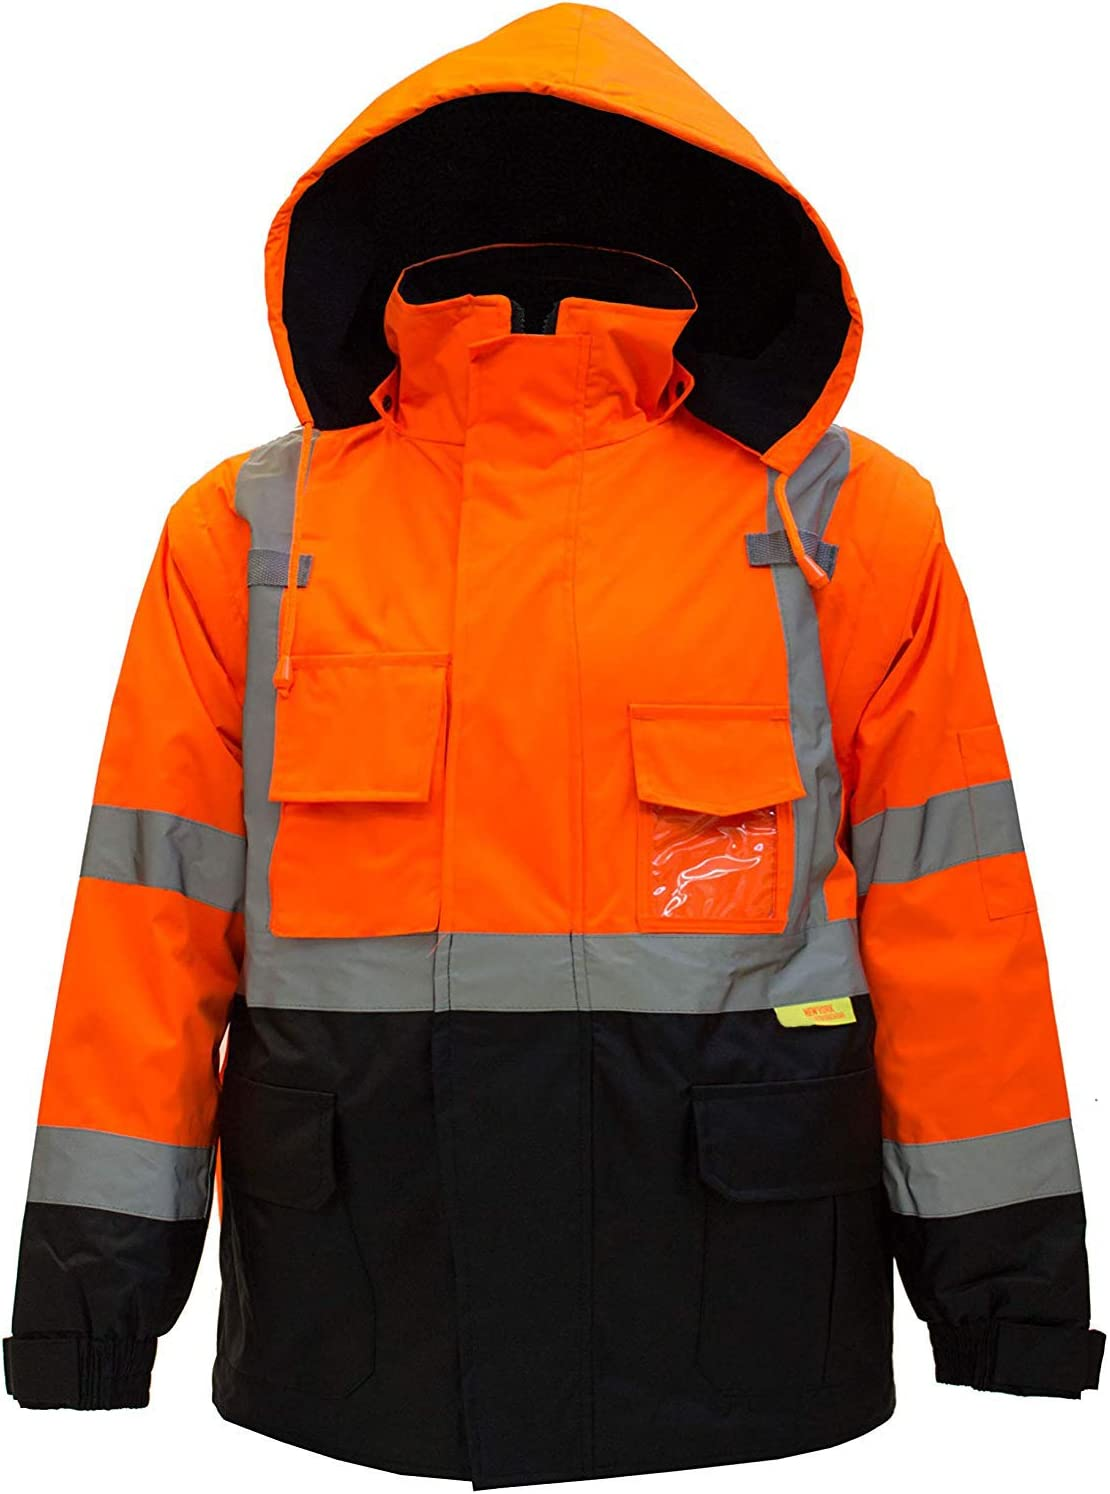 TroySafety New York Hi-Viz Workwear High Class SEAL limited product 3 Visibilit Men's Max 72% OFF